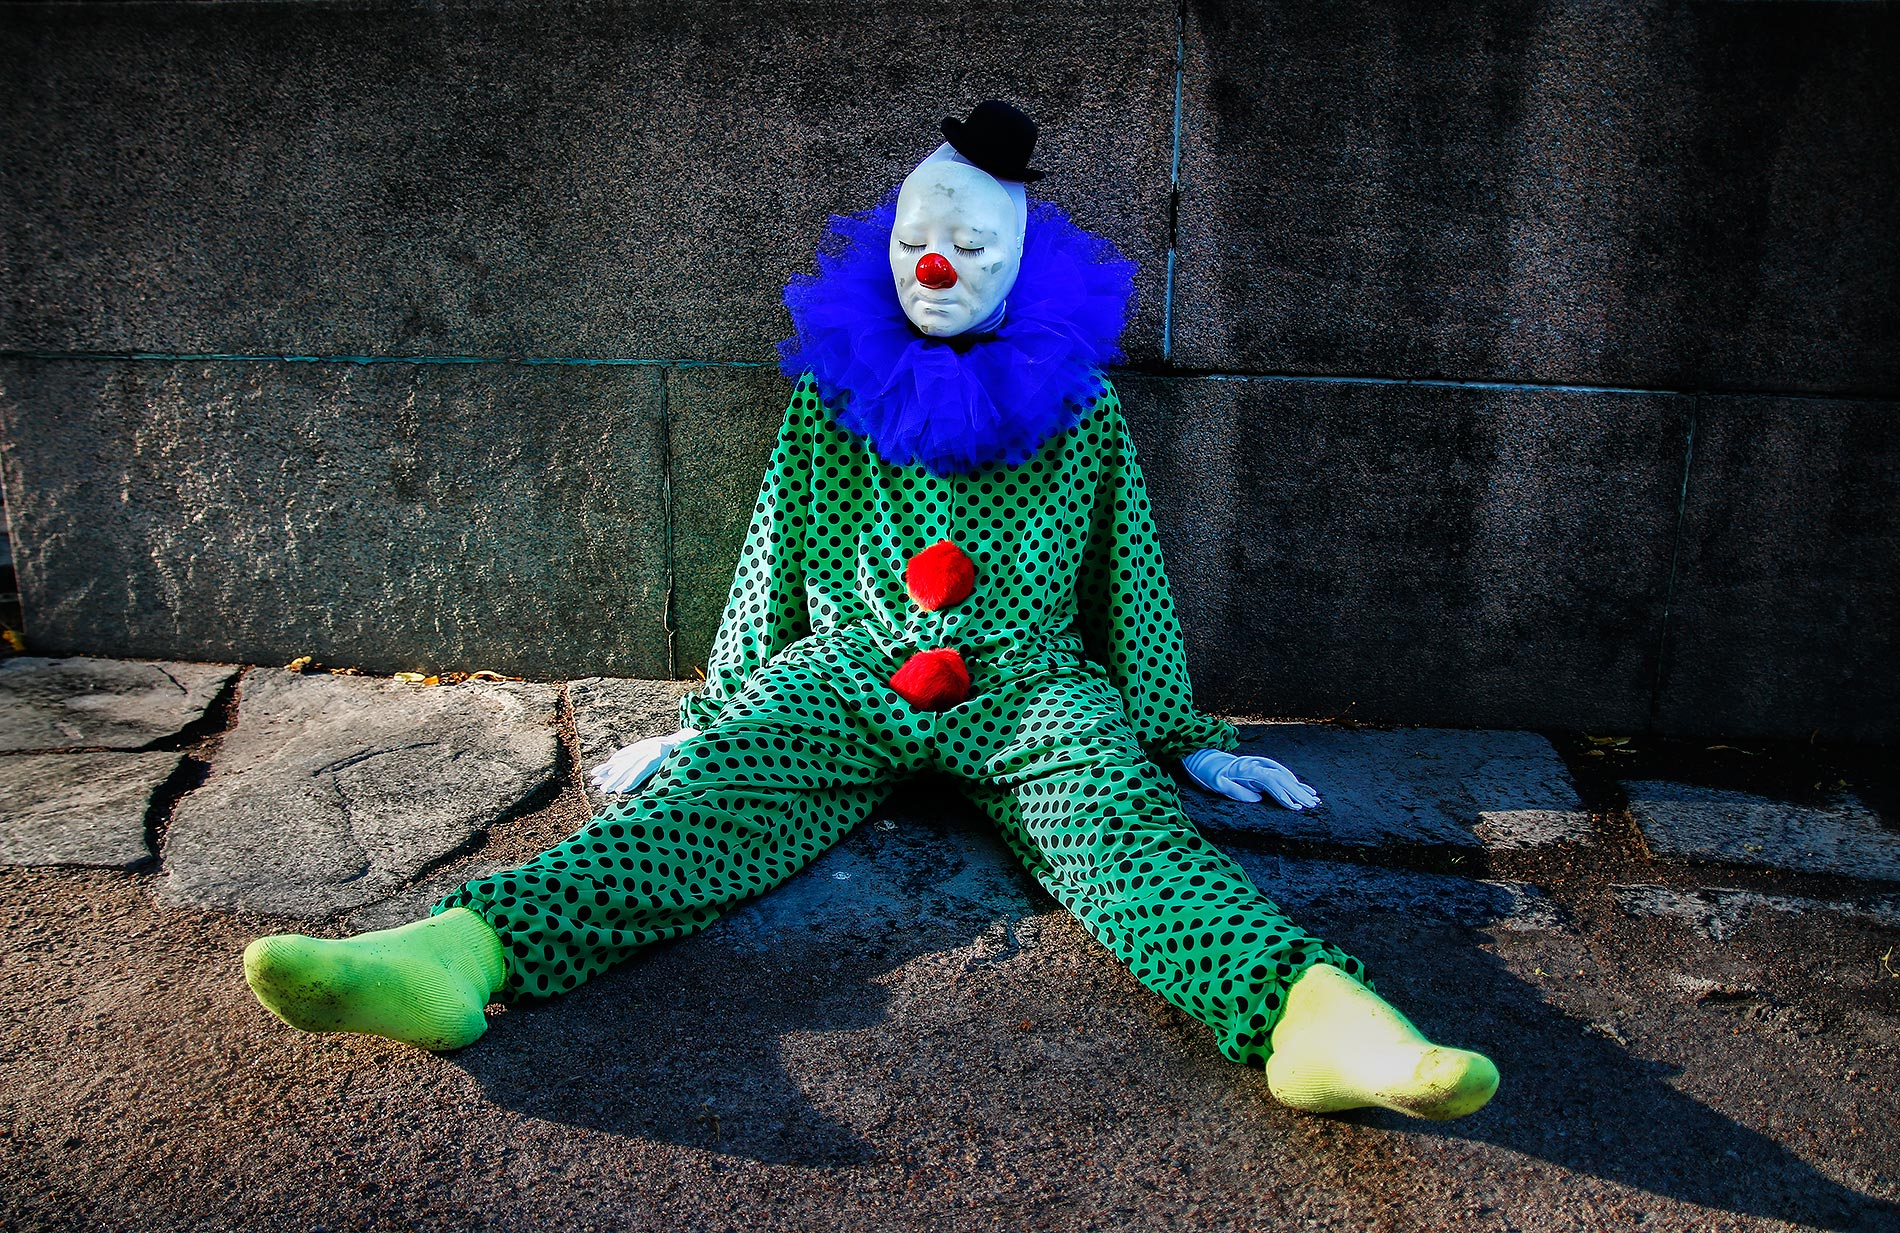 A clown relaxing in the Esplanade Park. Picture: Tony Öhberg for Finland Today